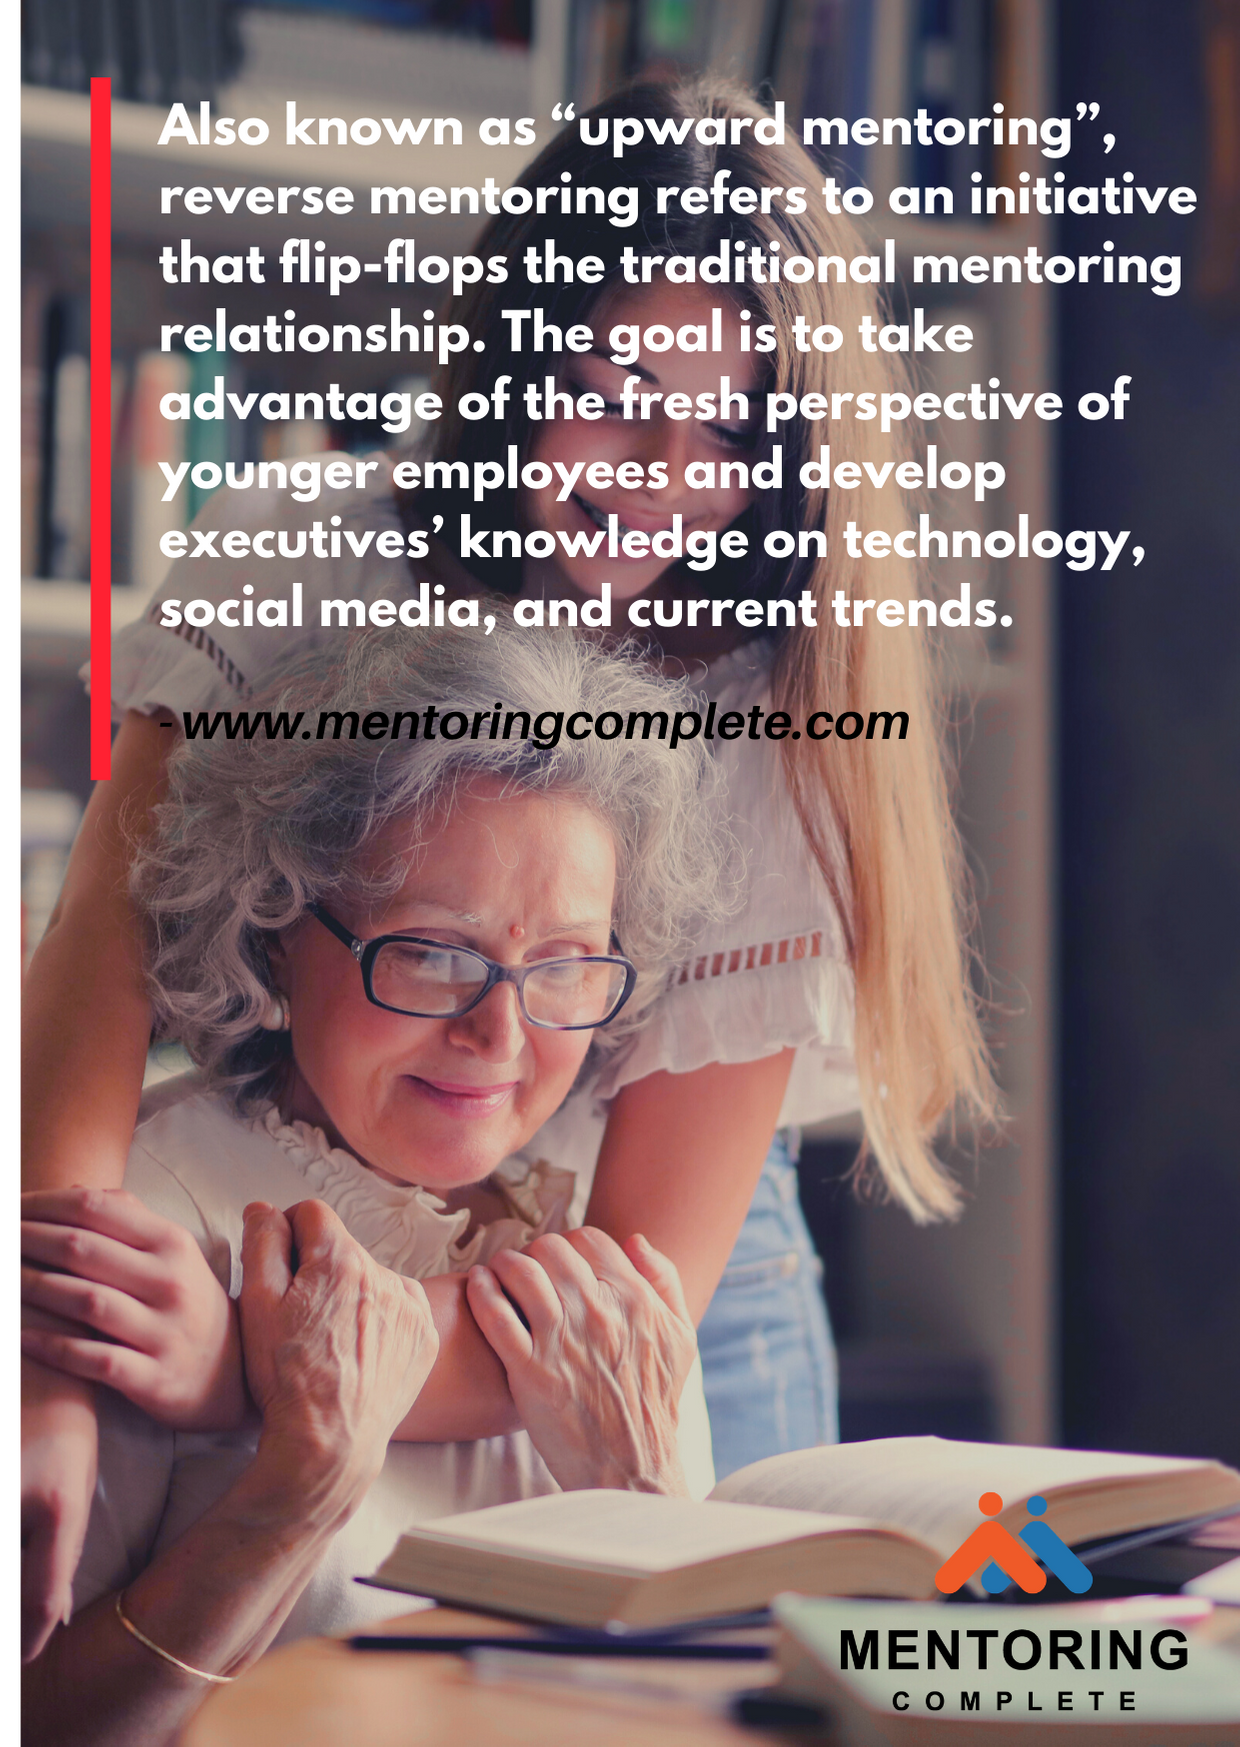 """Also known as """"upward mentoring"""", reverse mentoring refers to an initiative that flip-flops the traditional mentoring relationship. The goal is to take advantage of the fresh perspective of younger employees and deve"""